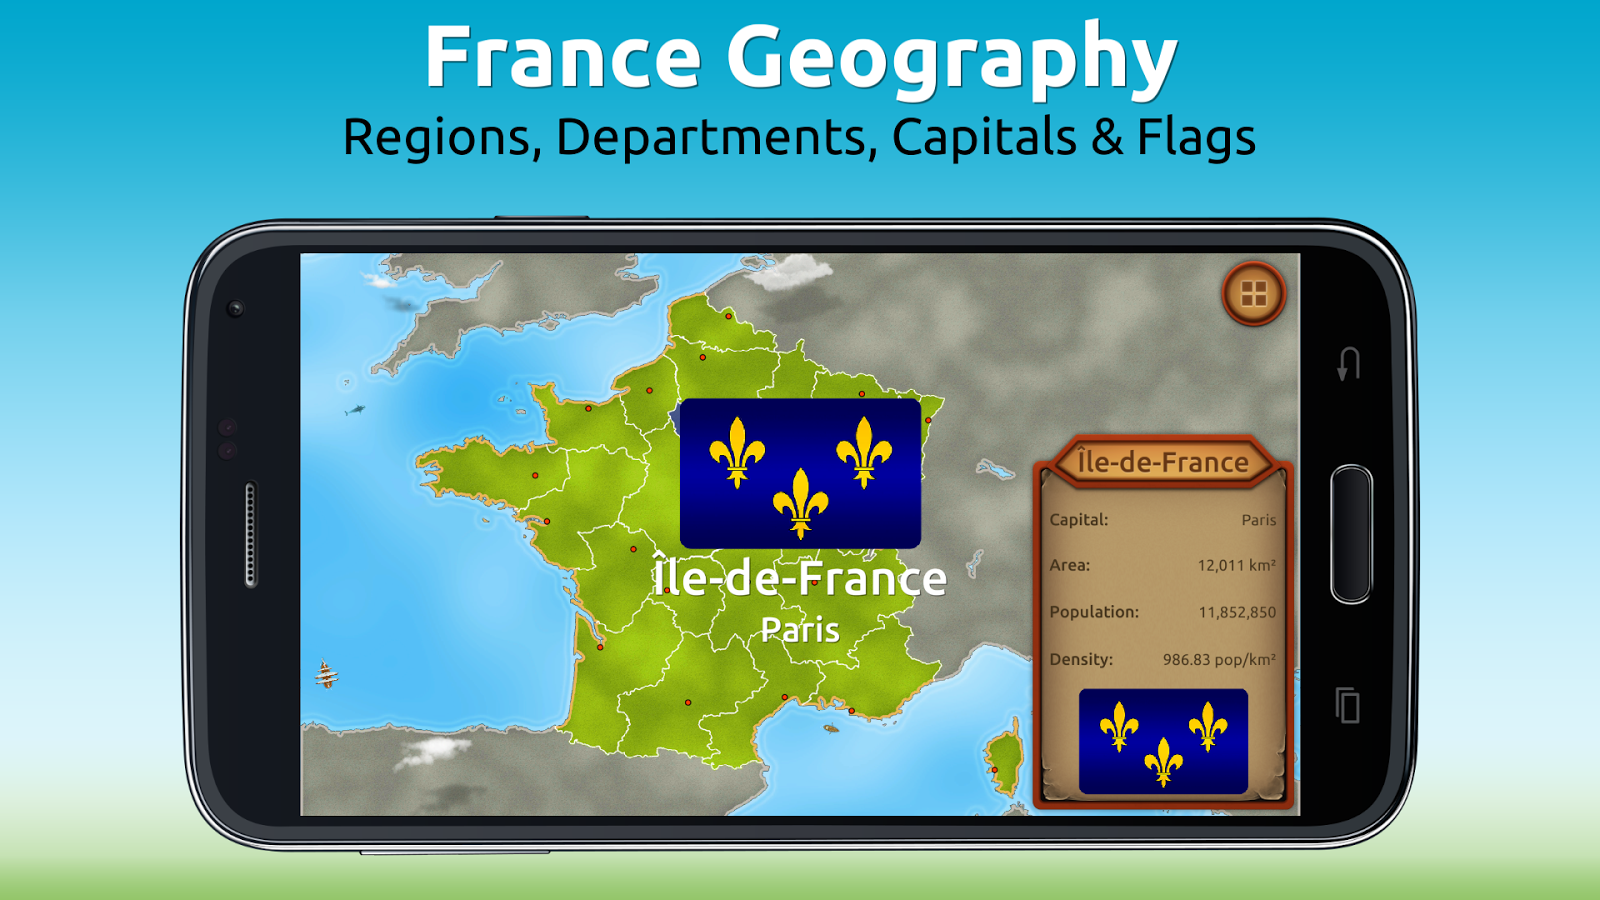 GeoExpert - France Geography Screenshot 0